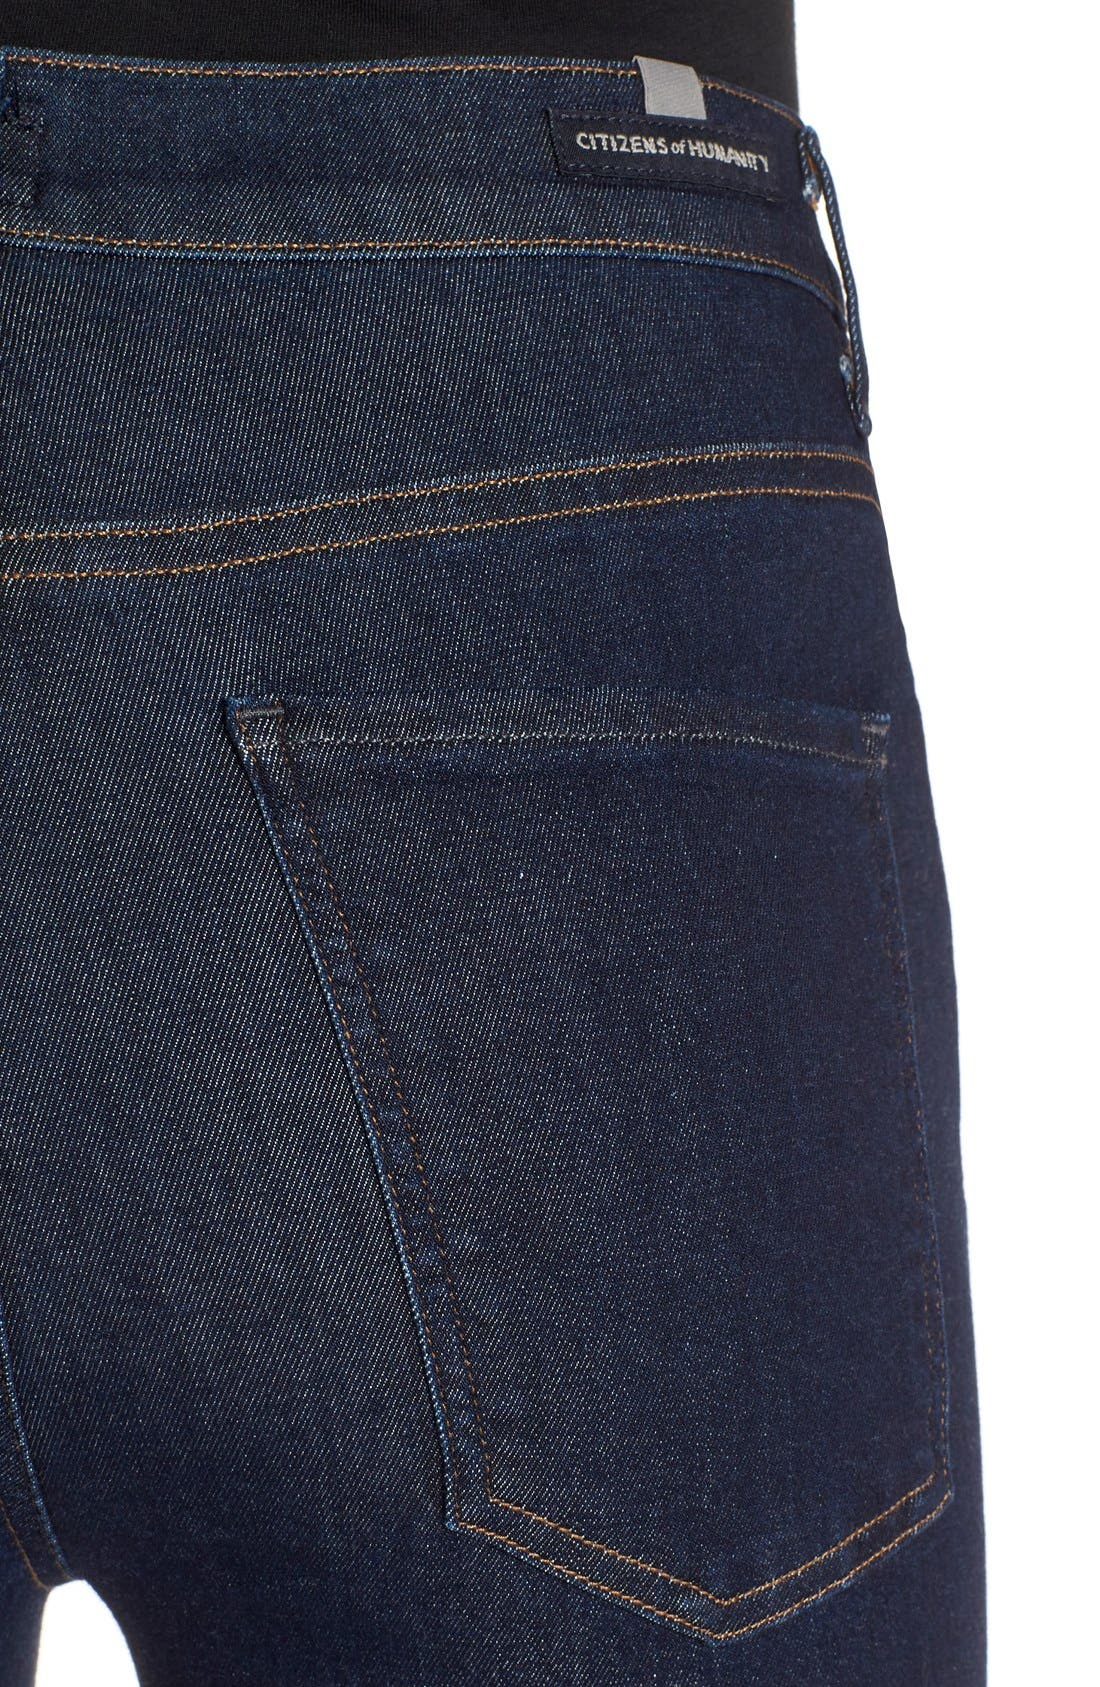 'Carlie' High Rise Skinny Jeans,                             Alternate thumbnail 4, color,                             406